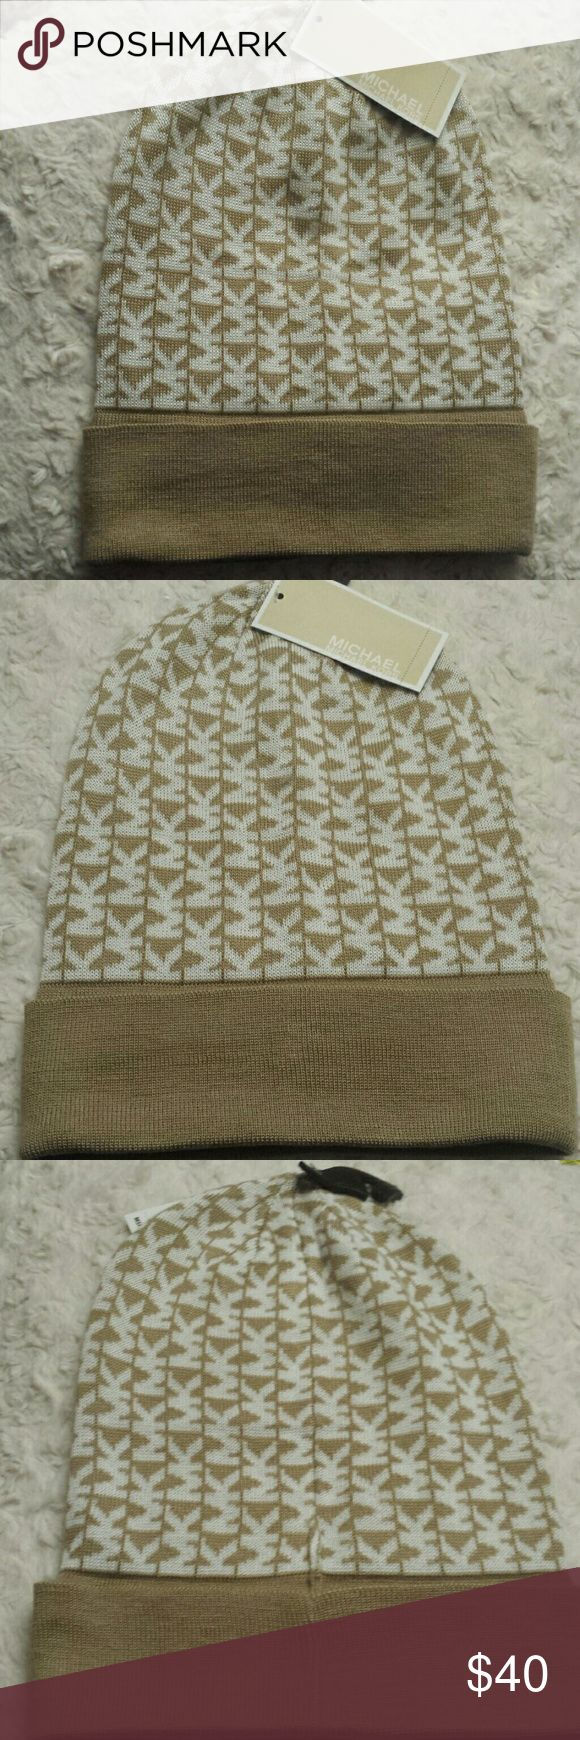 Michael Kors NWT Signature Camel /Cream Beanie Hat Micheal Kors NWT Signature Camel and Cream Beanie hat, one size fits most , double fold cuffed hem, acrylic material, hand wash, Authentic see tags Micheal Kors Accessories Hats